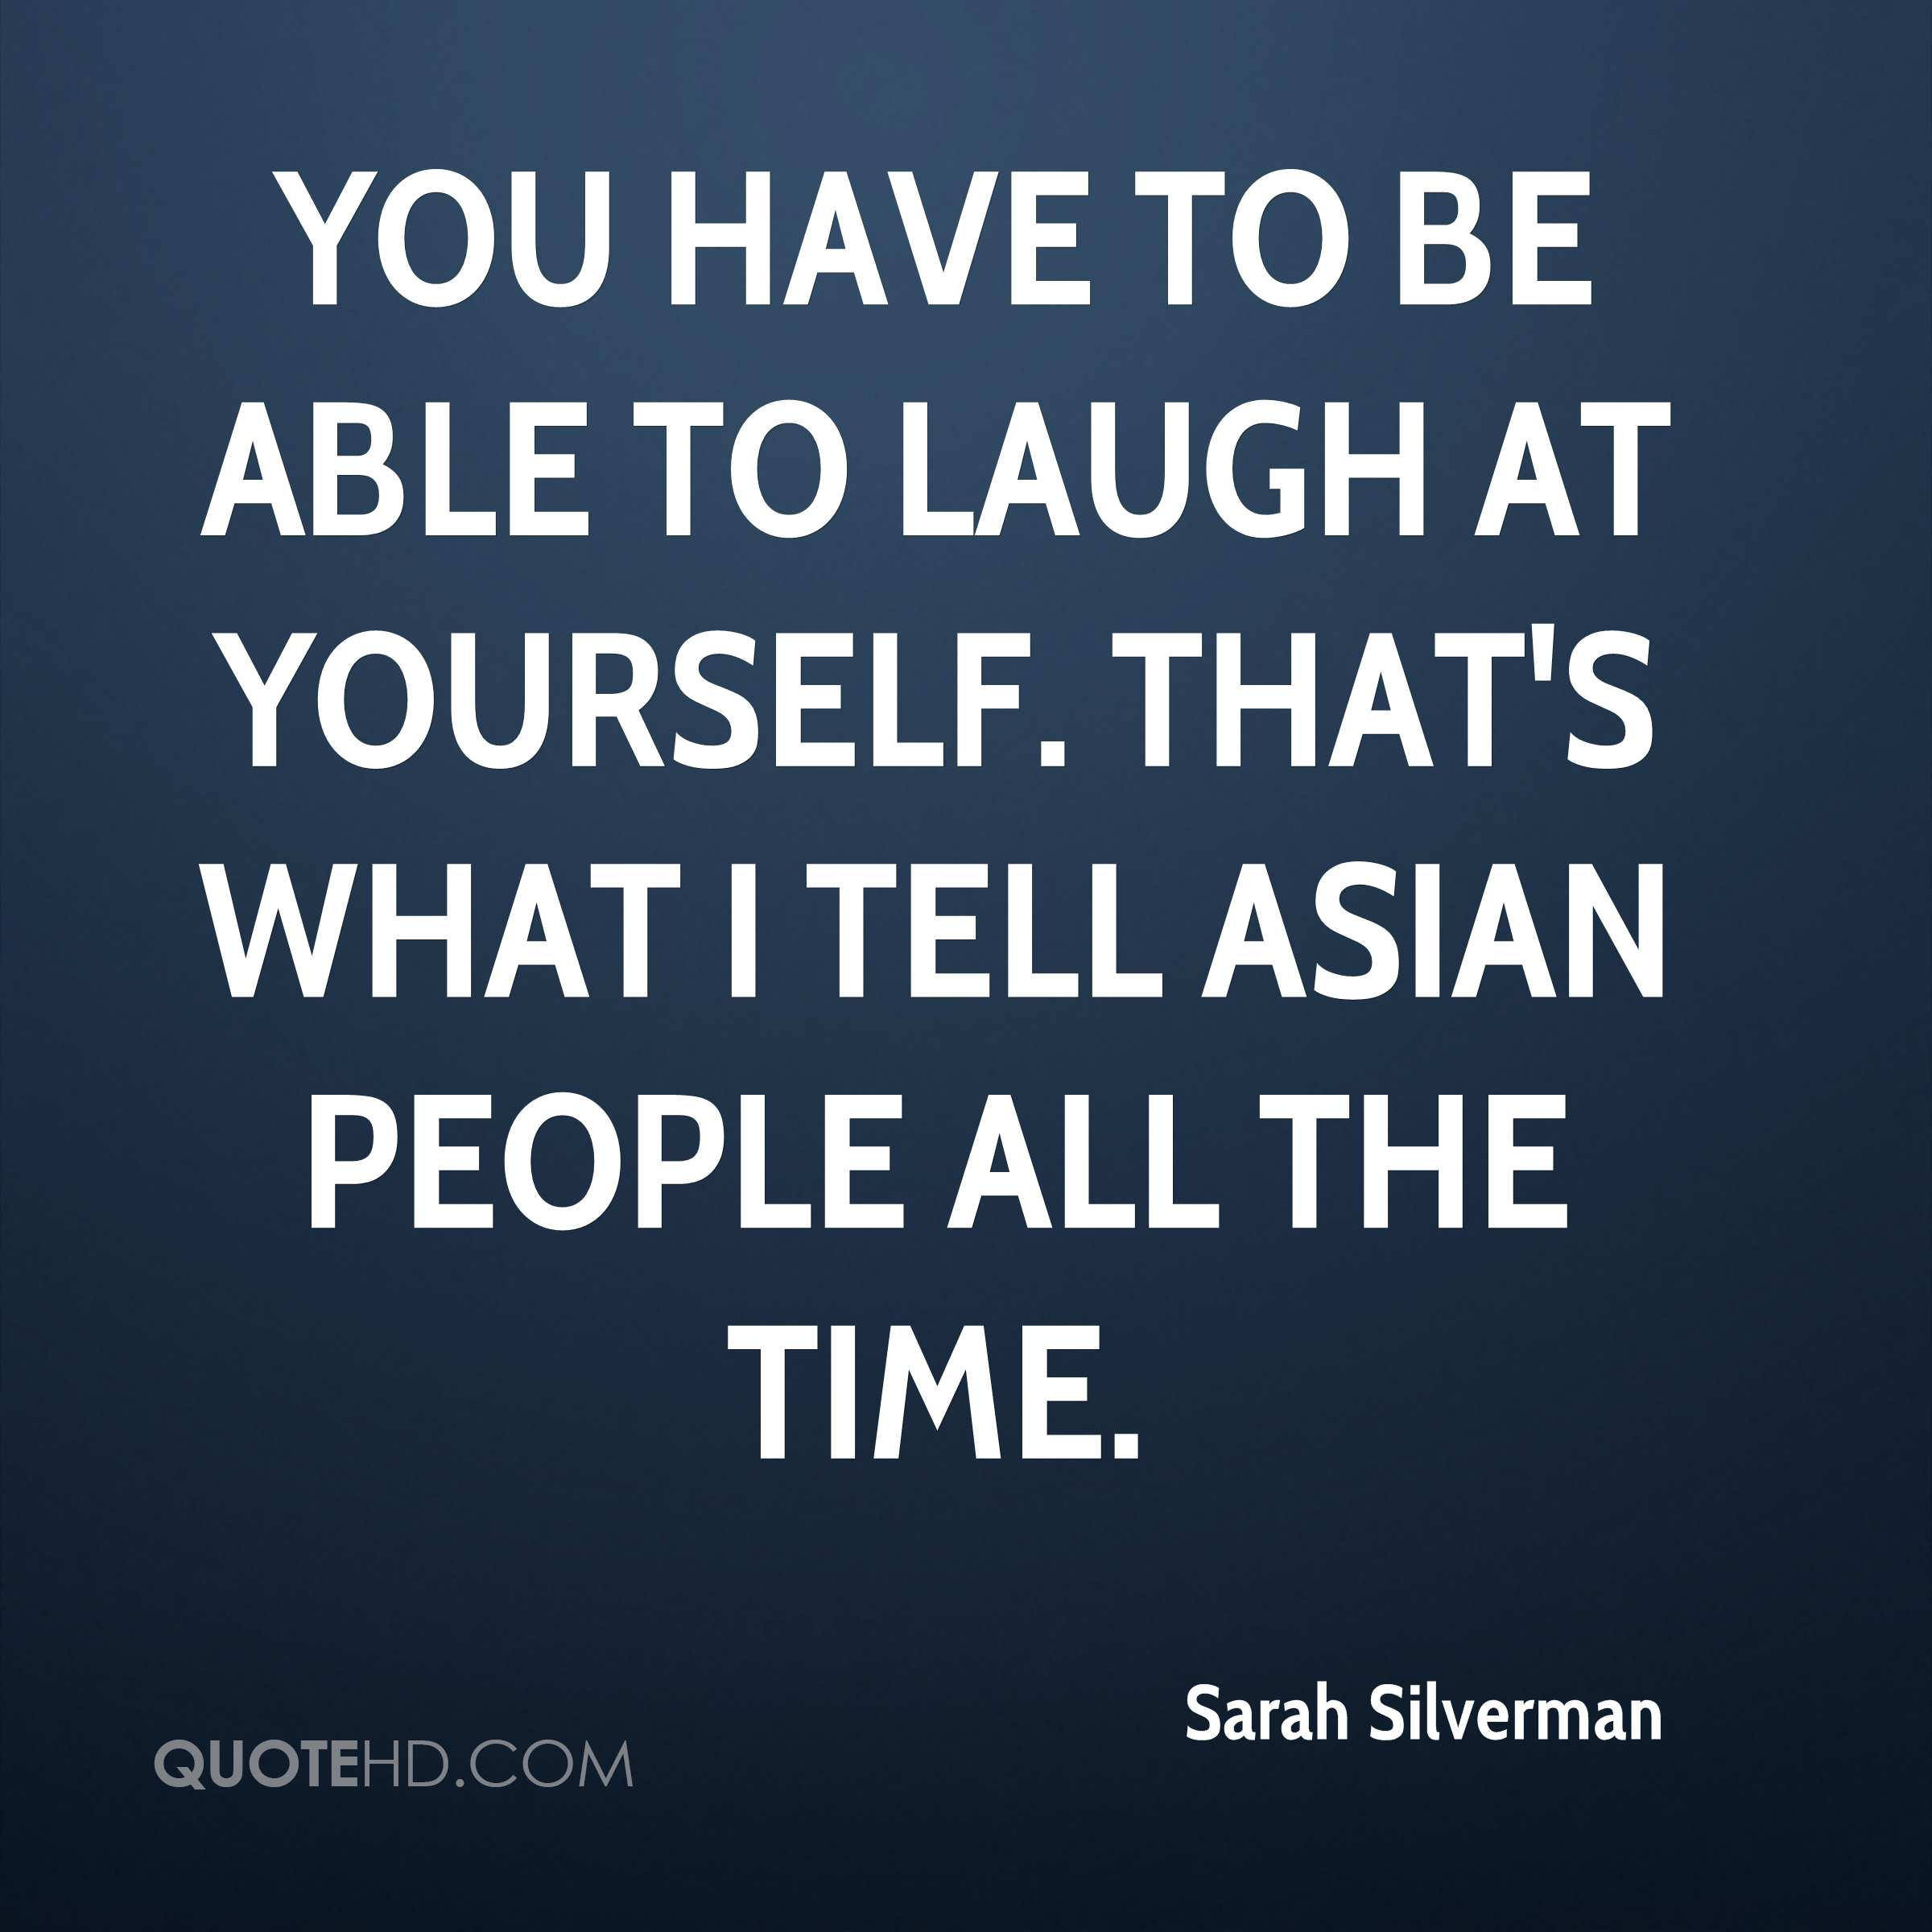 You have to be able to laugh at yourself. That's what I tell Asian people all the time.